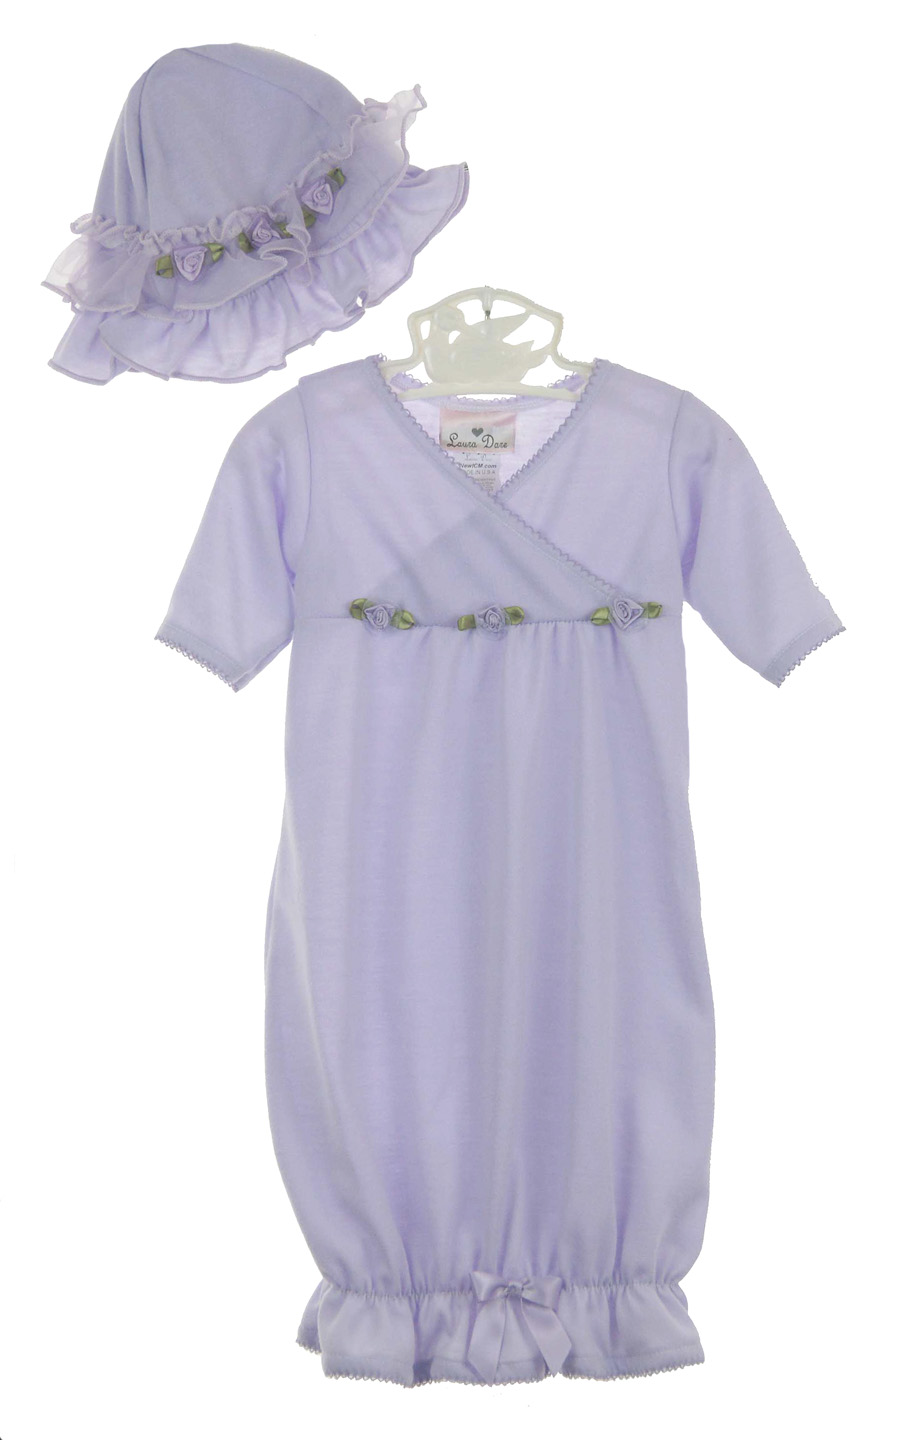 lavender knit newborn gown and hat set with ribbon rosebuds,lavender ...